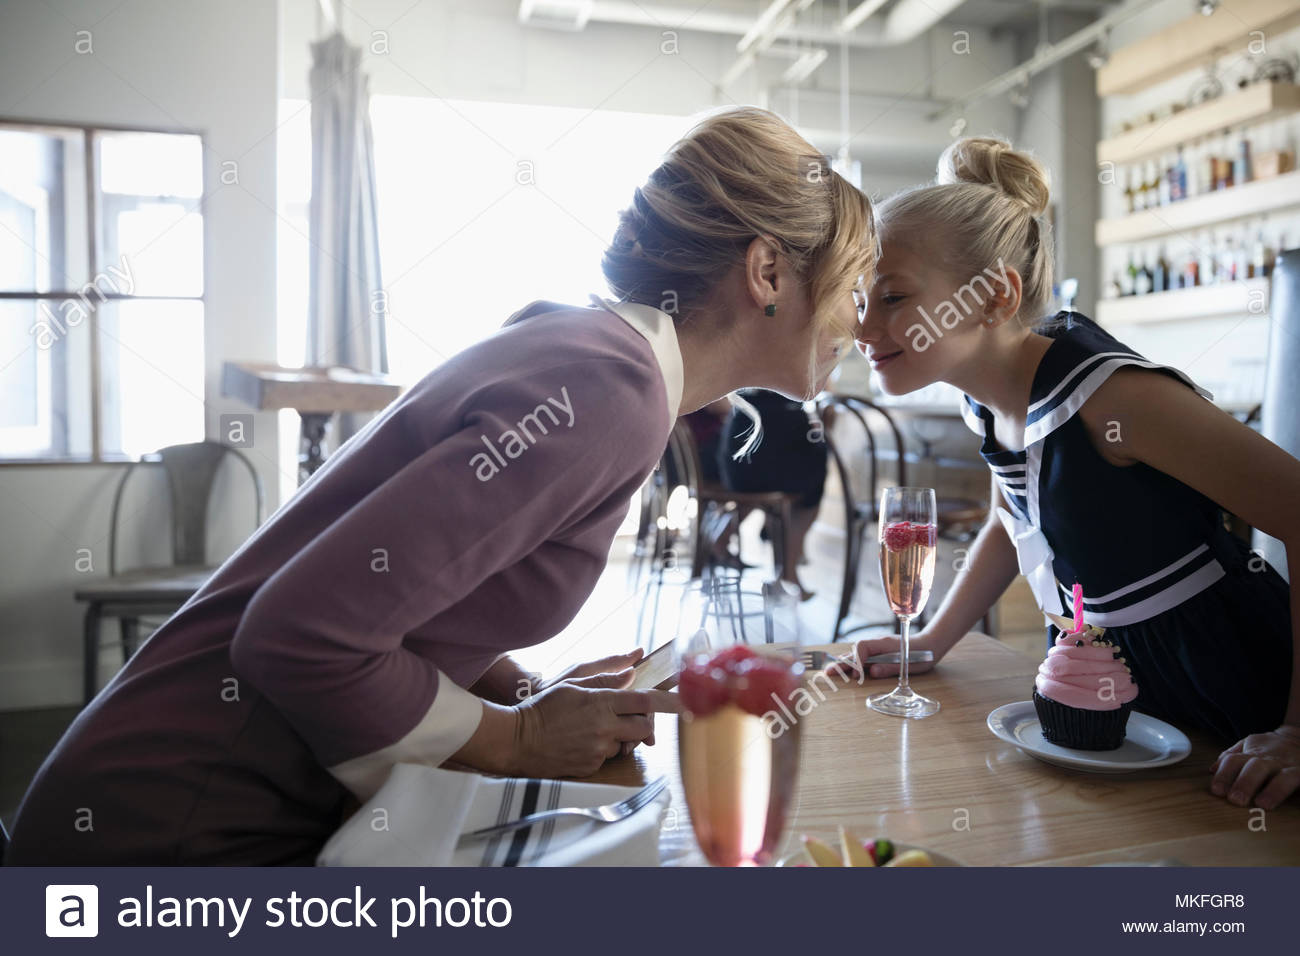 Affectionate mother and daughter rubbing noses, celebrating birthday in cafe - Stock Image